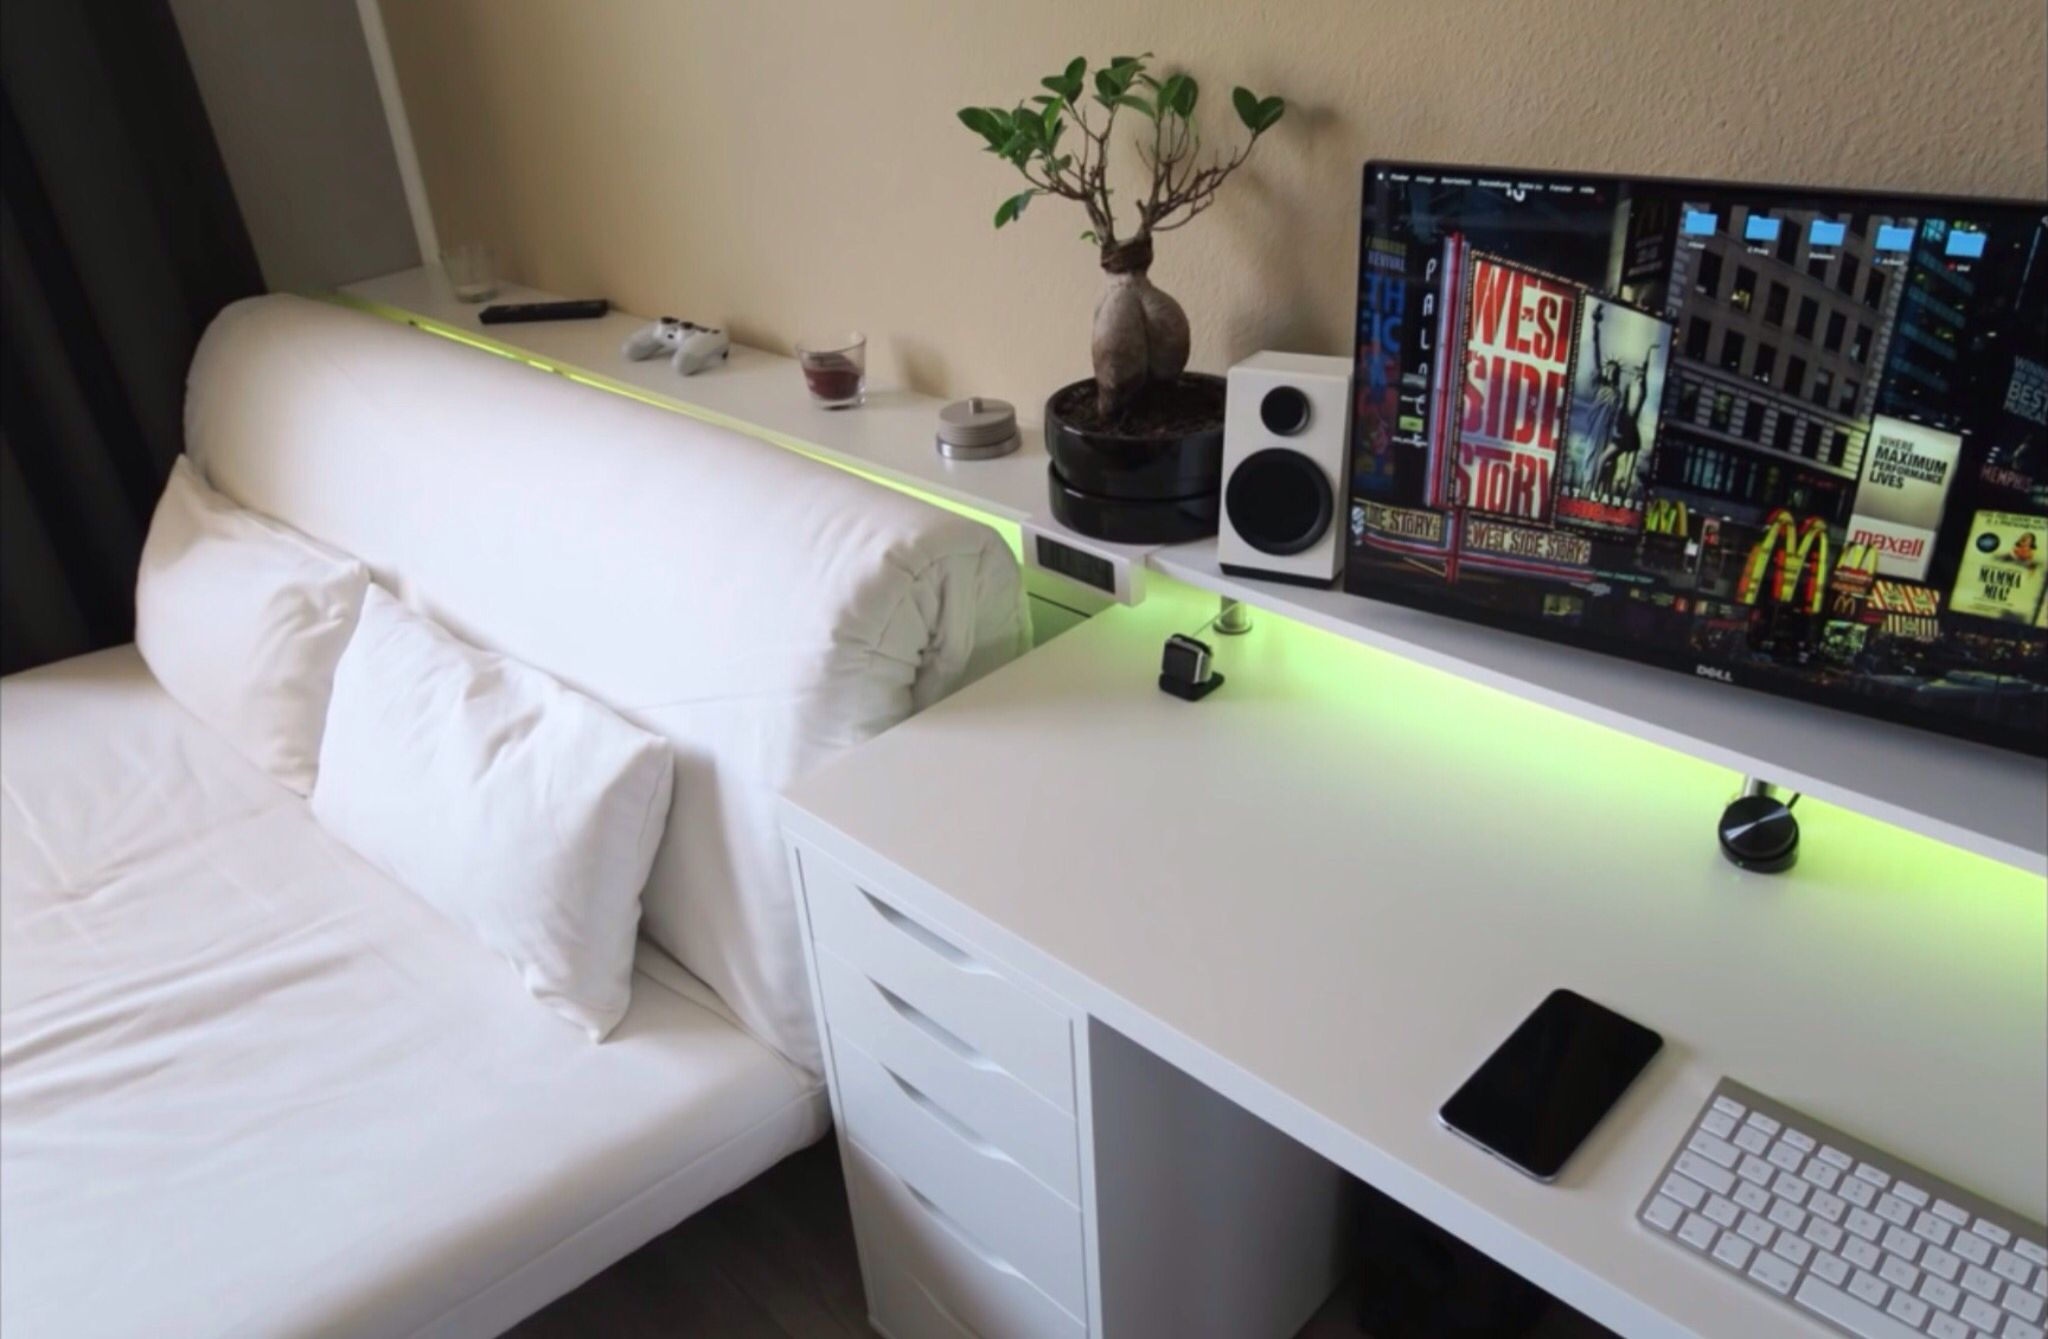 Apartment Computer Desks Bedroom Gaming Setup Tech Pinterest Gaming Setup